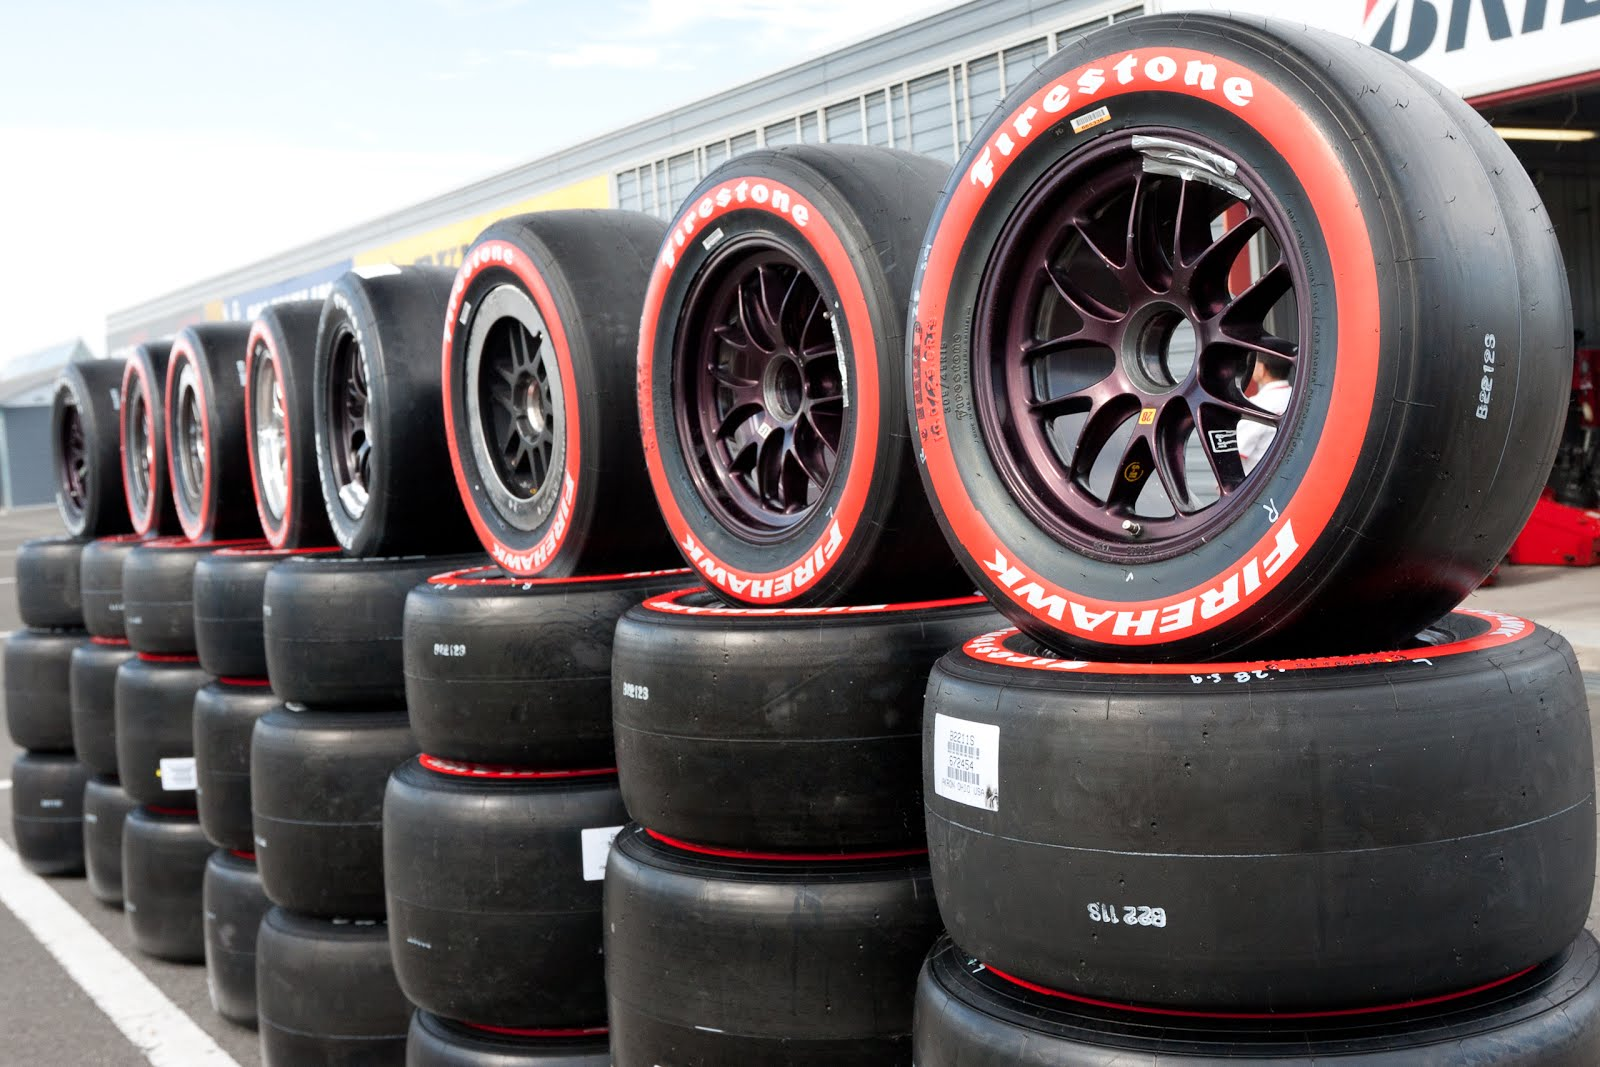 Firestone_tires_2011_Indy_Japan_300.jpg